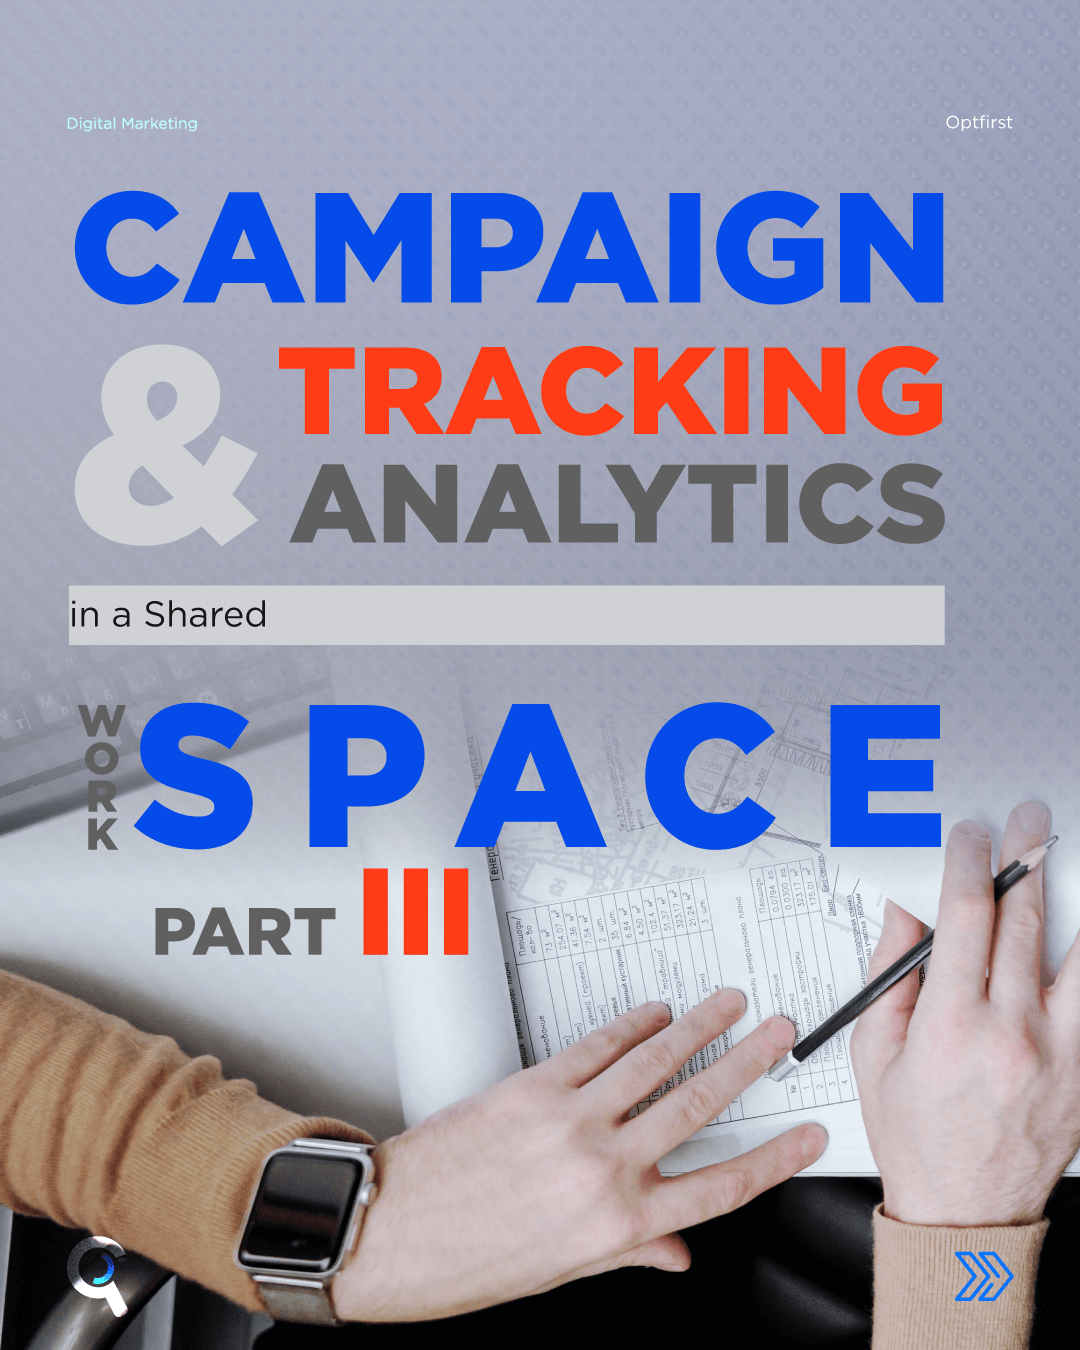 Campaign Tracking & Analytics in a Shared Workspace